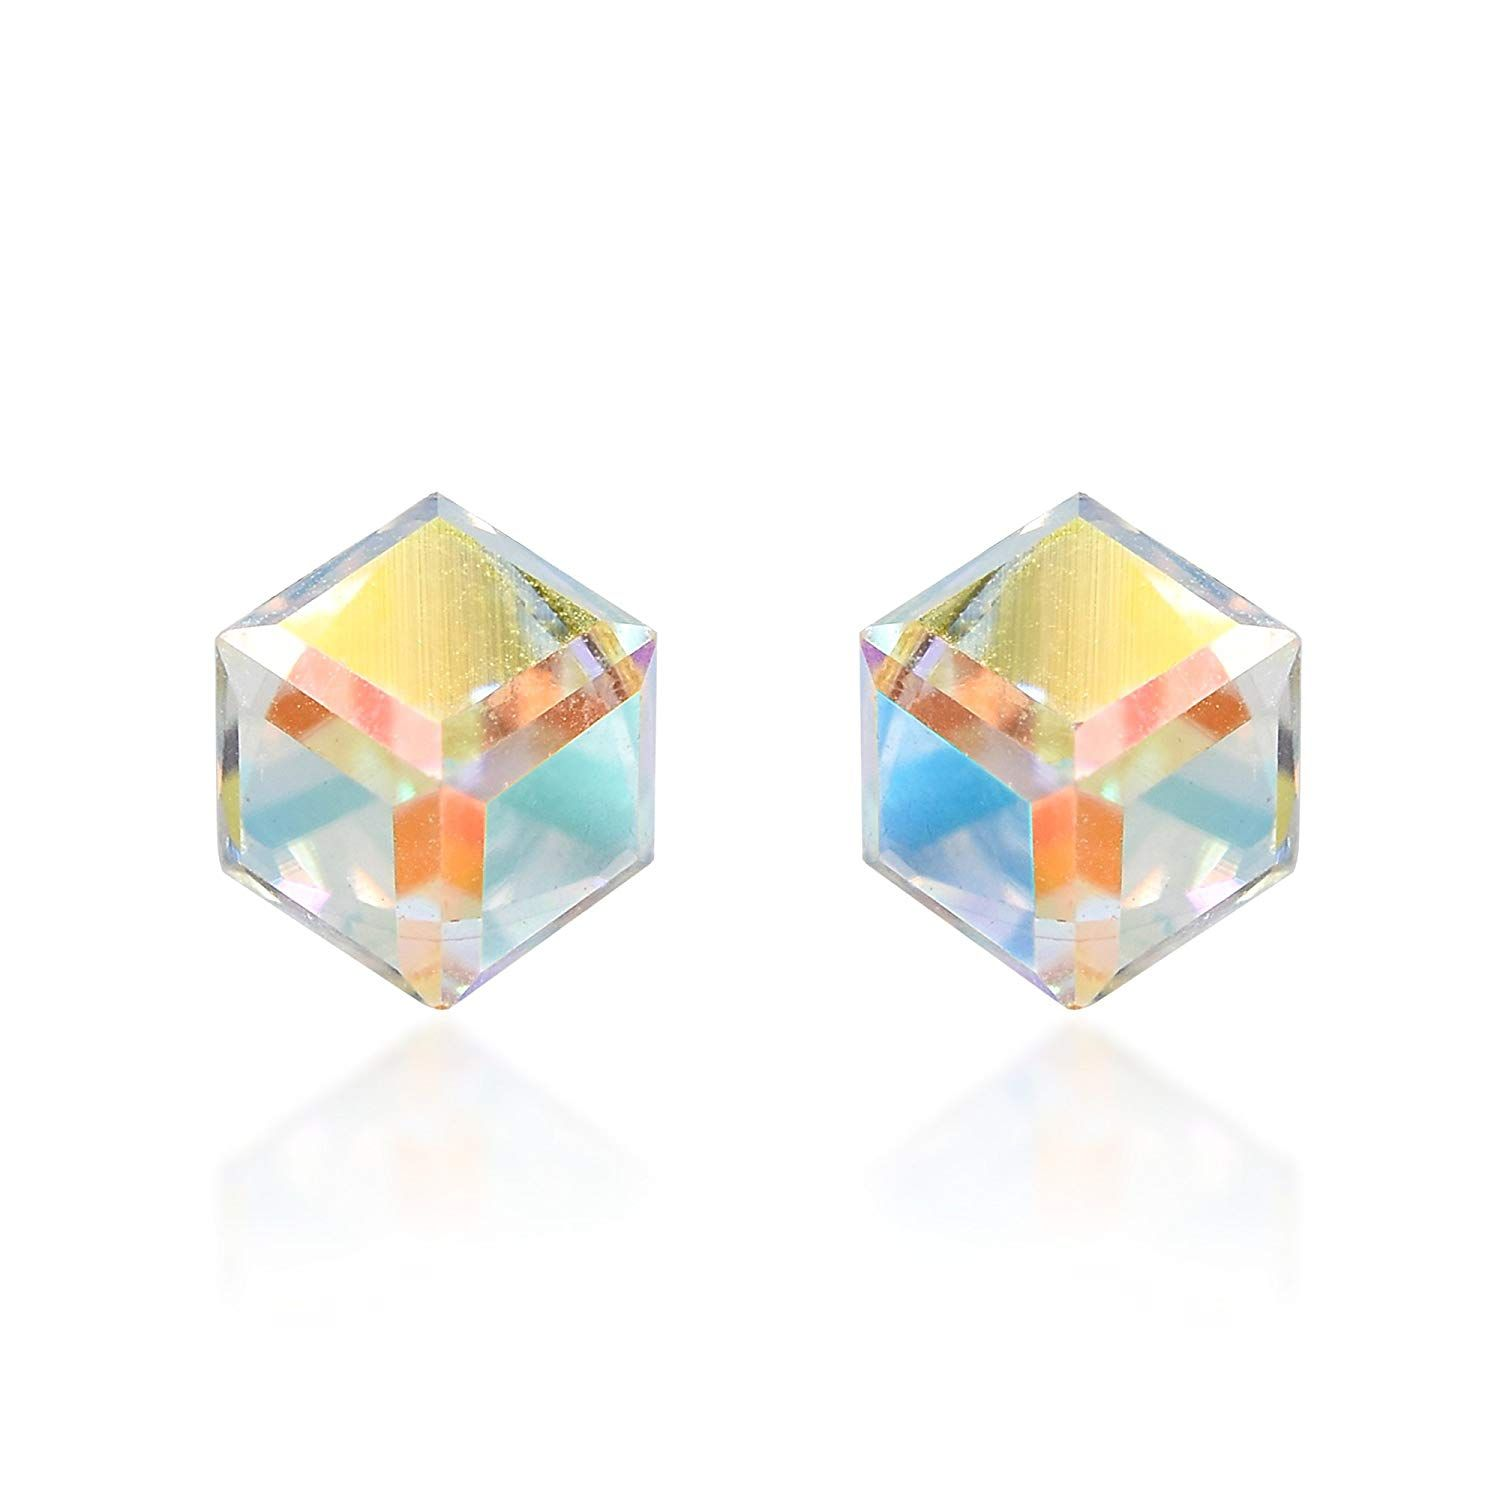 b5937abcc0ea7 Lotus Fun S925 Sterling Silver Stud Earrings Honeycomb Home Guard ...